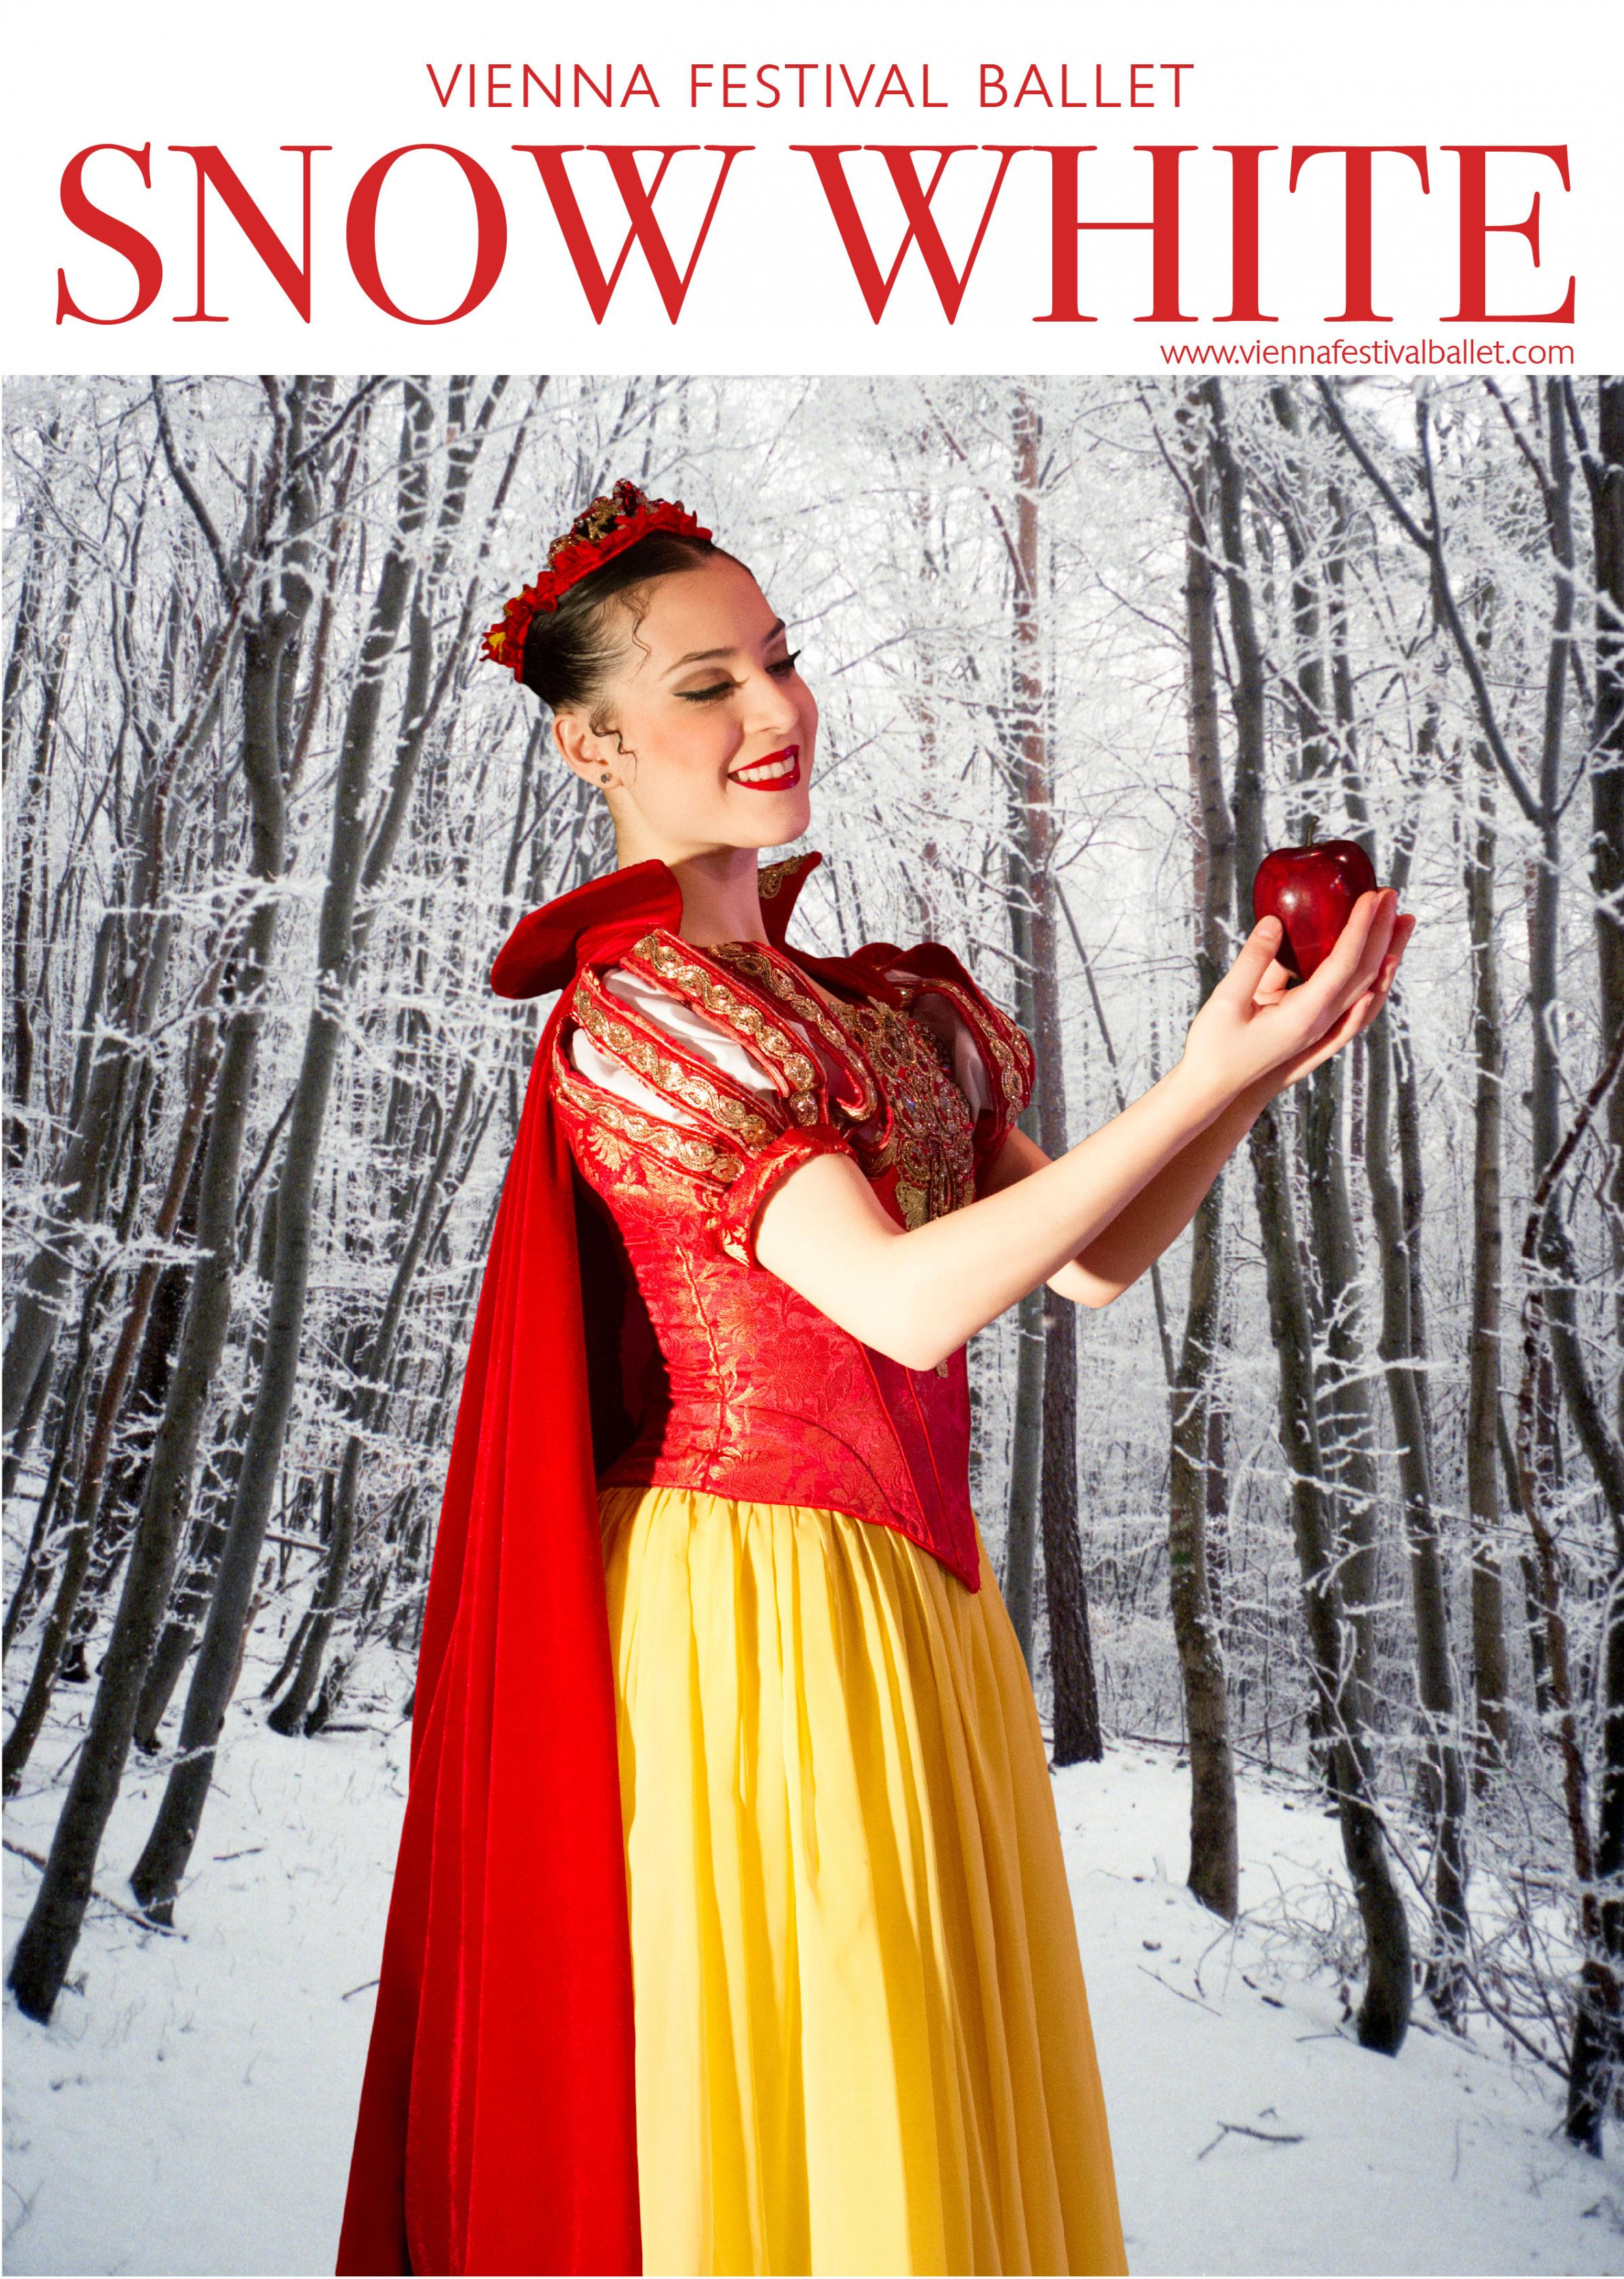 The Vienna Festival Ballet - Snow White